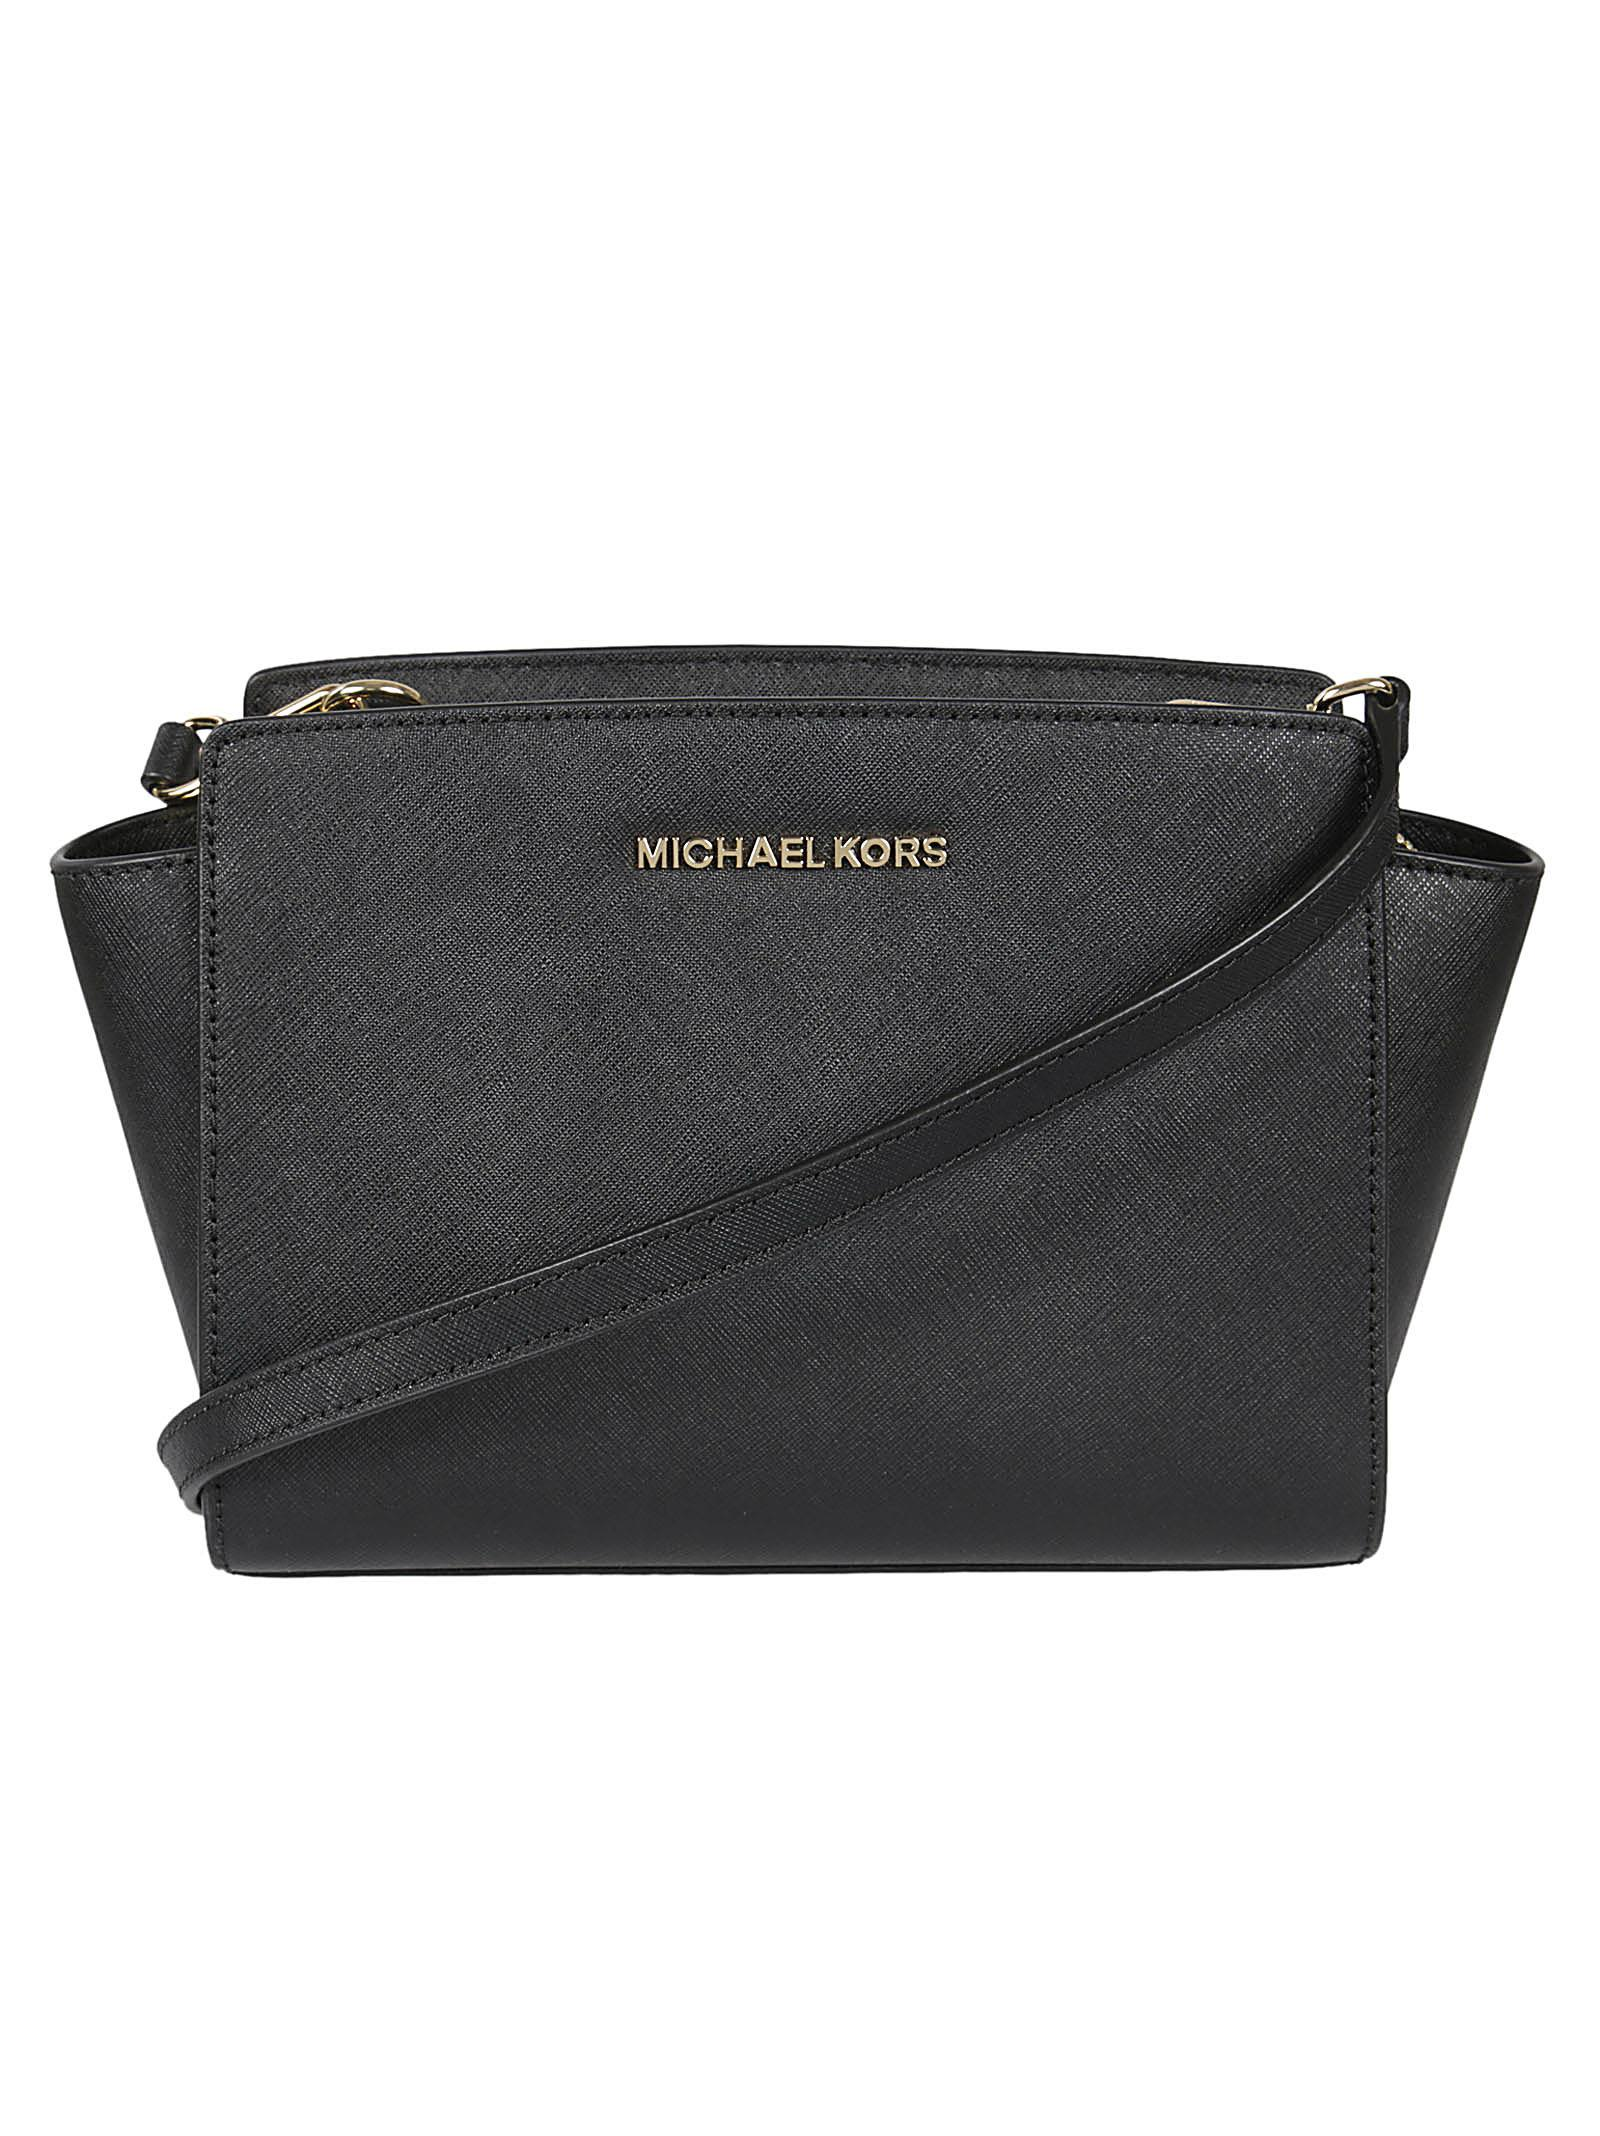 Michael Kors Medium Selma Shoulder Bag